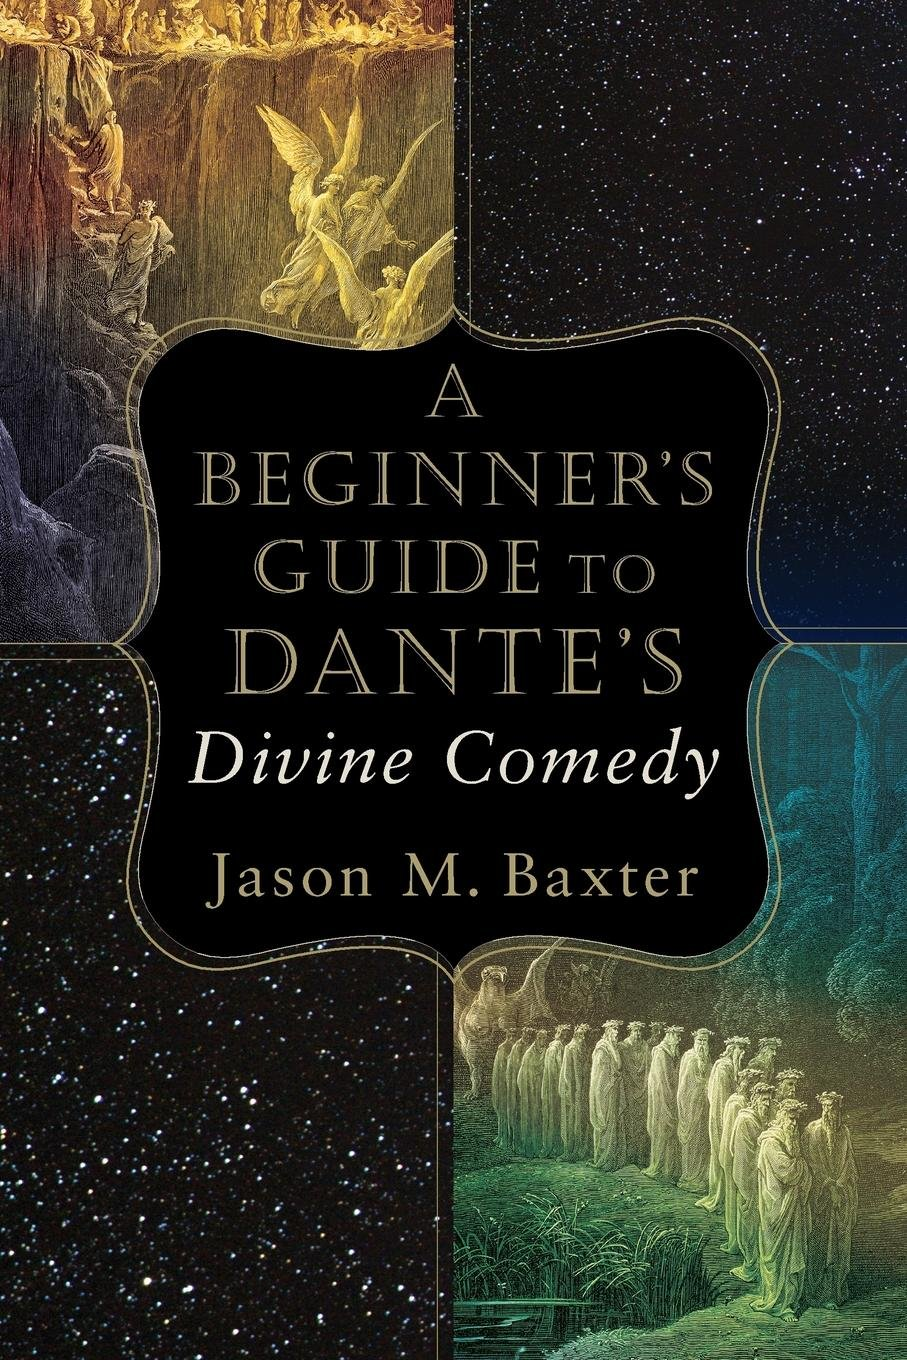 Dante for Beginners